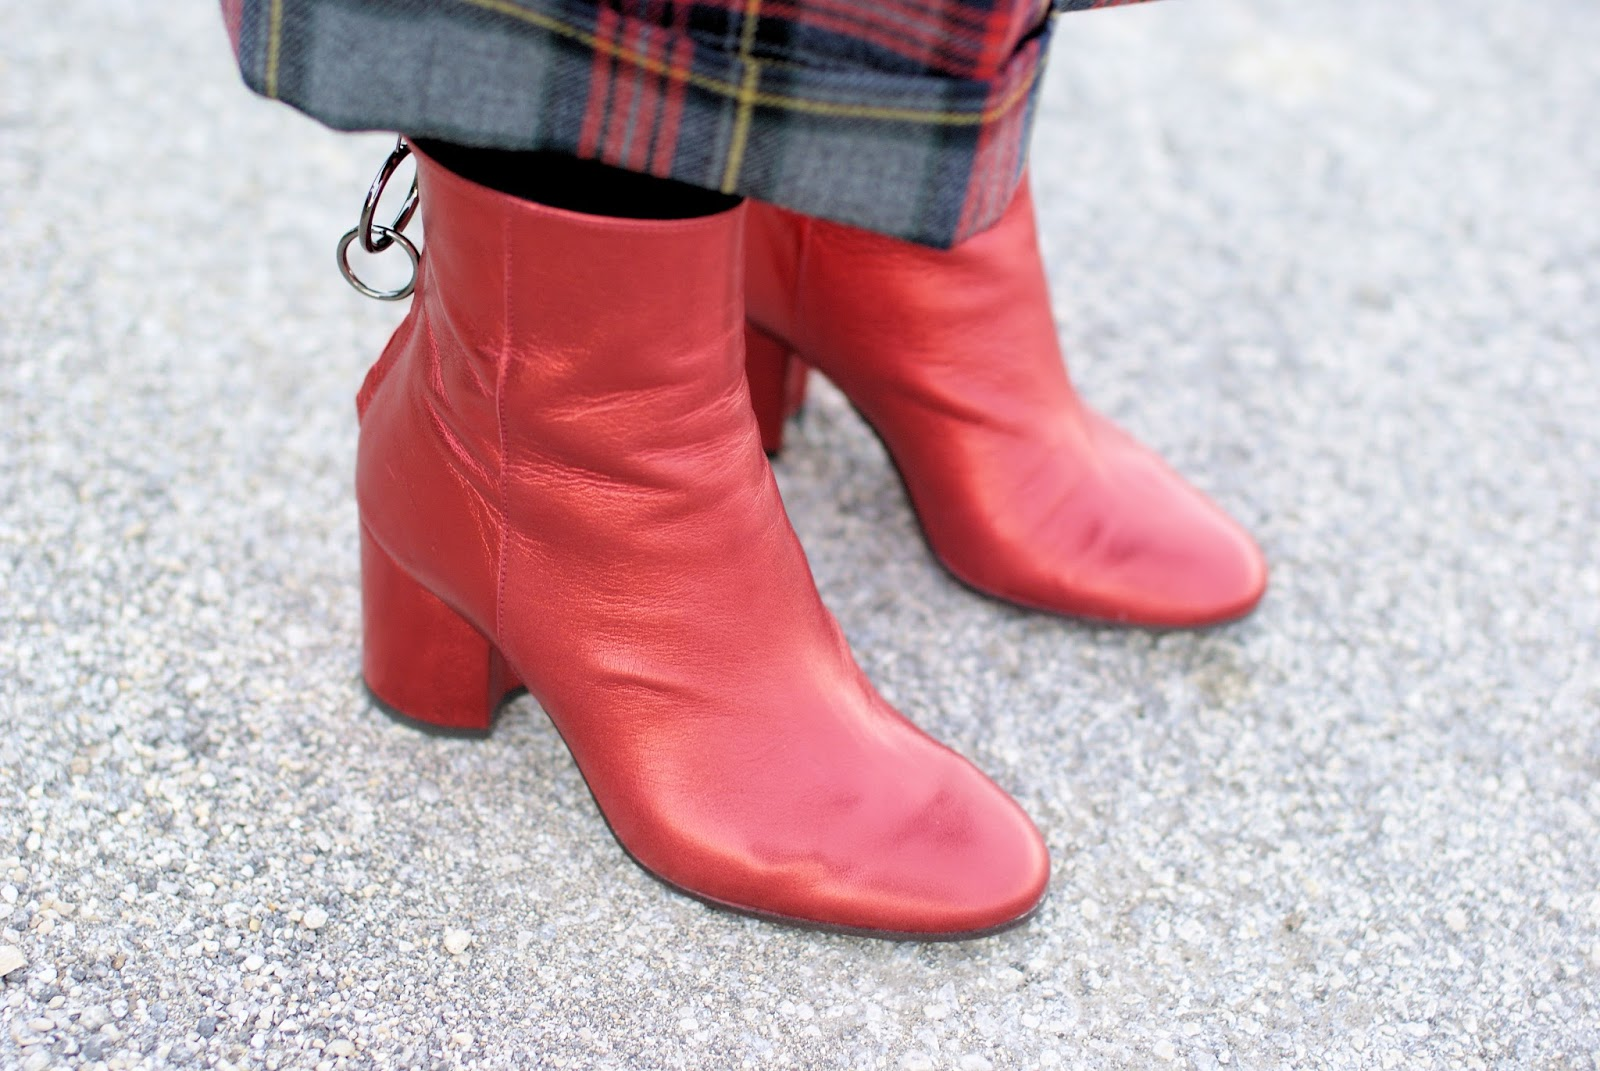 Metallic red boots on Fashion and Cookies fashion blog, fashion blogger style